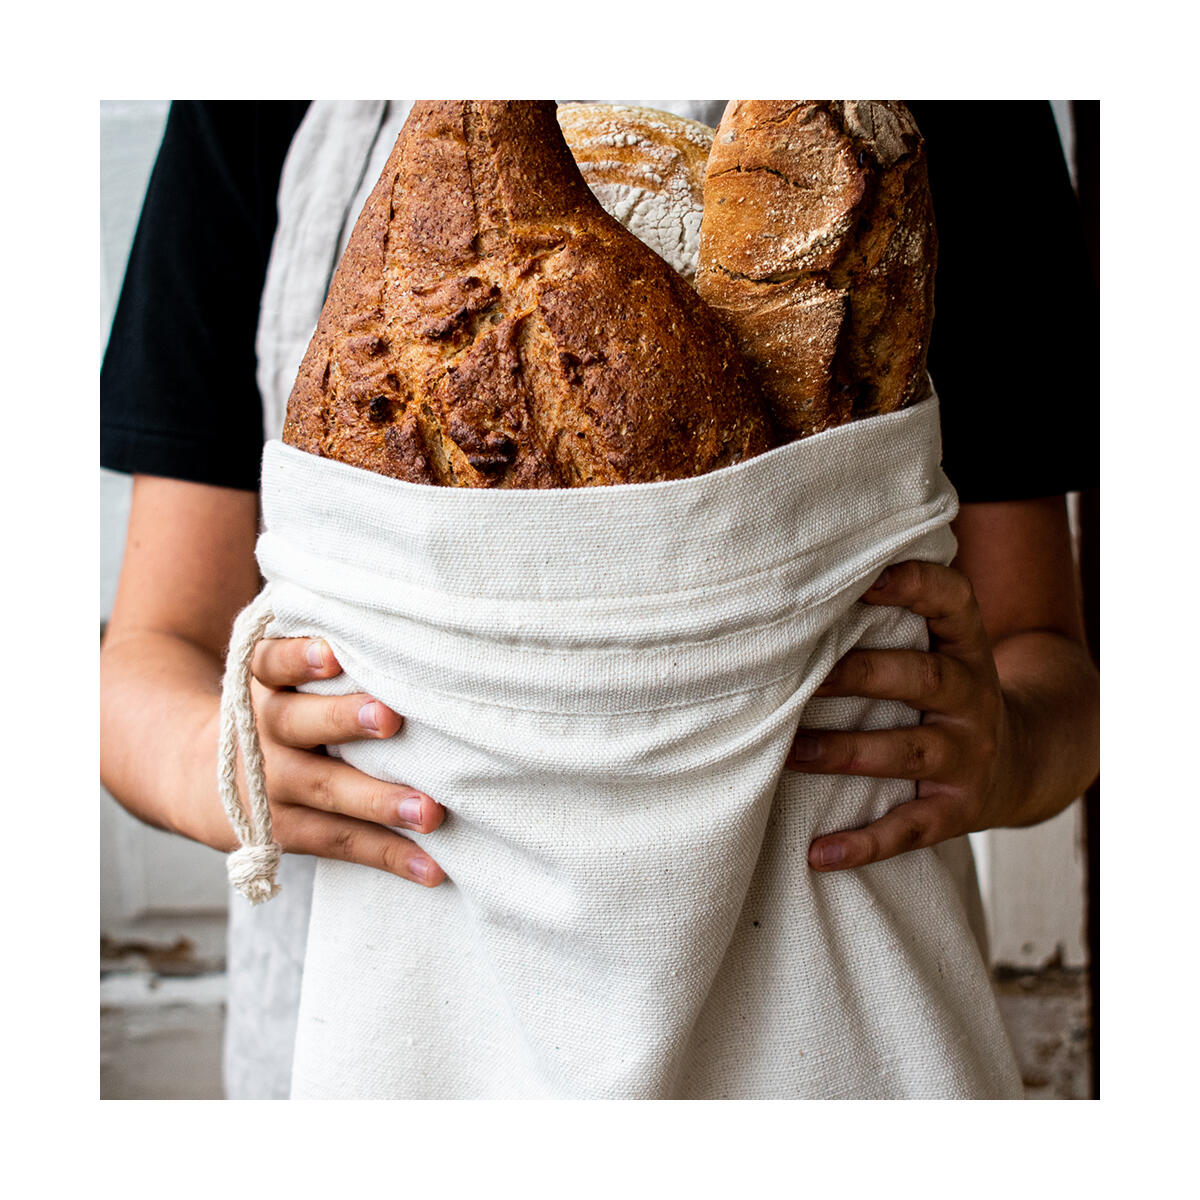 Patented Reusable Bread Bag for Homemade Bread